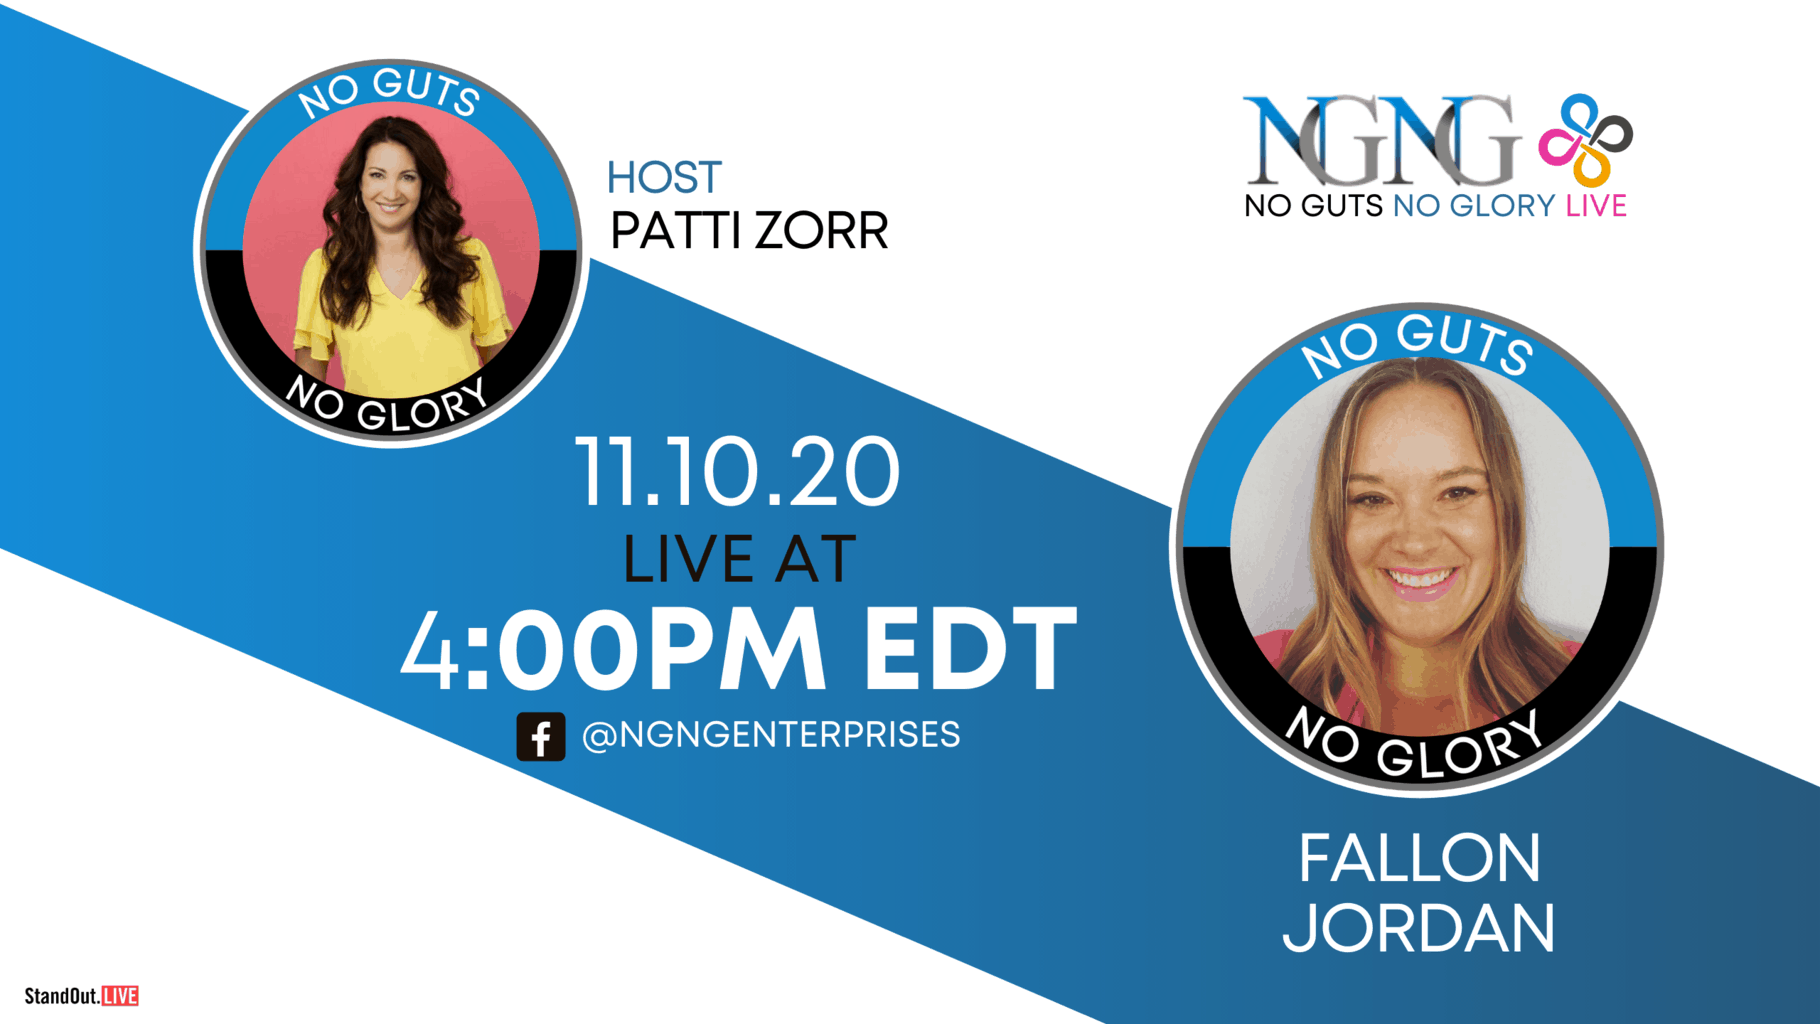 11.10-Fallon Jordan-NO GUTS NO GLORY LIVE (Twitter, YouTube, Blog)